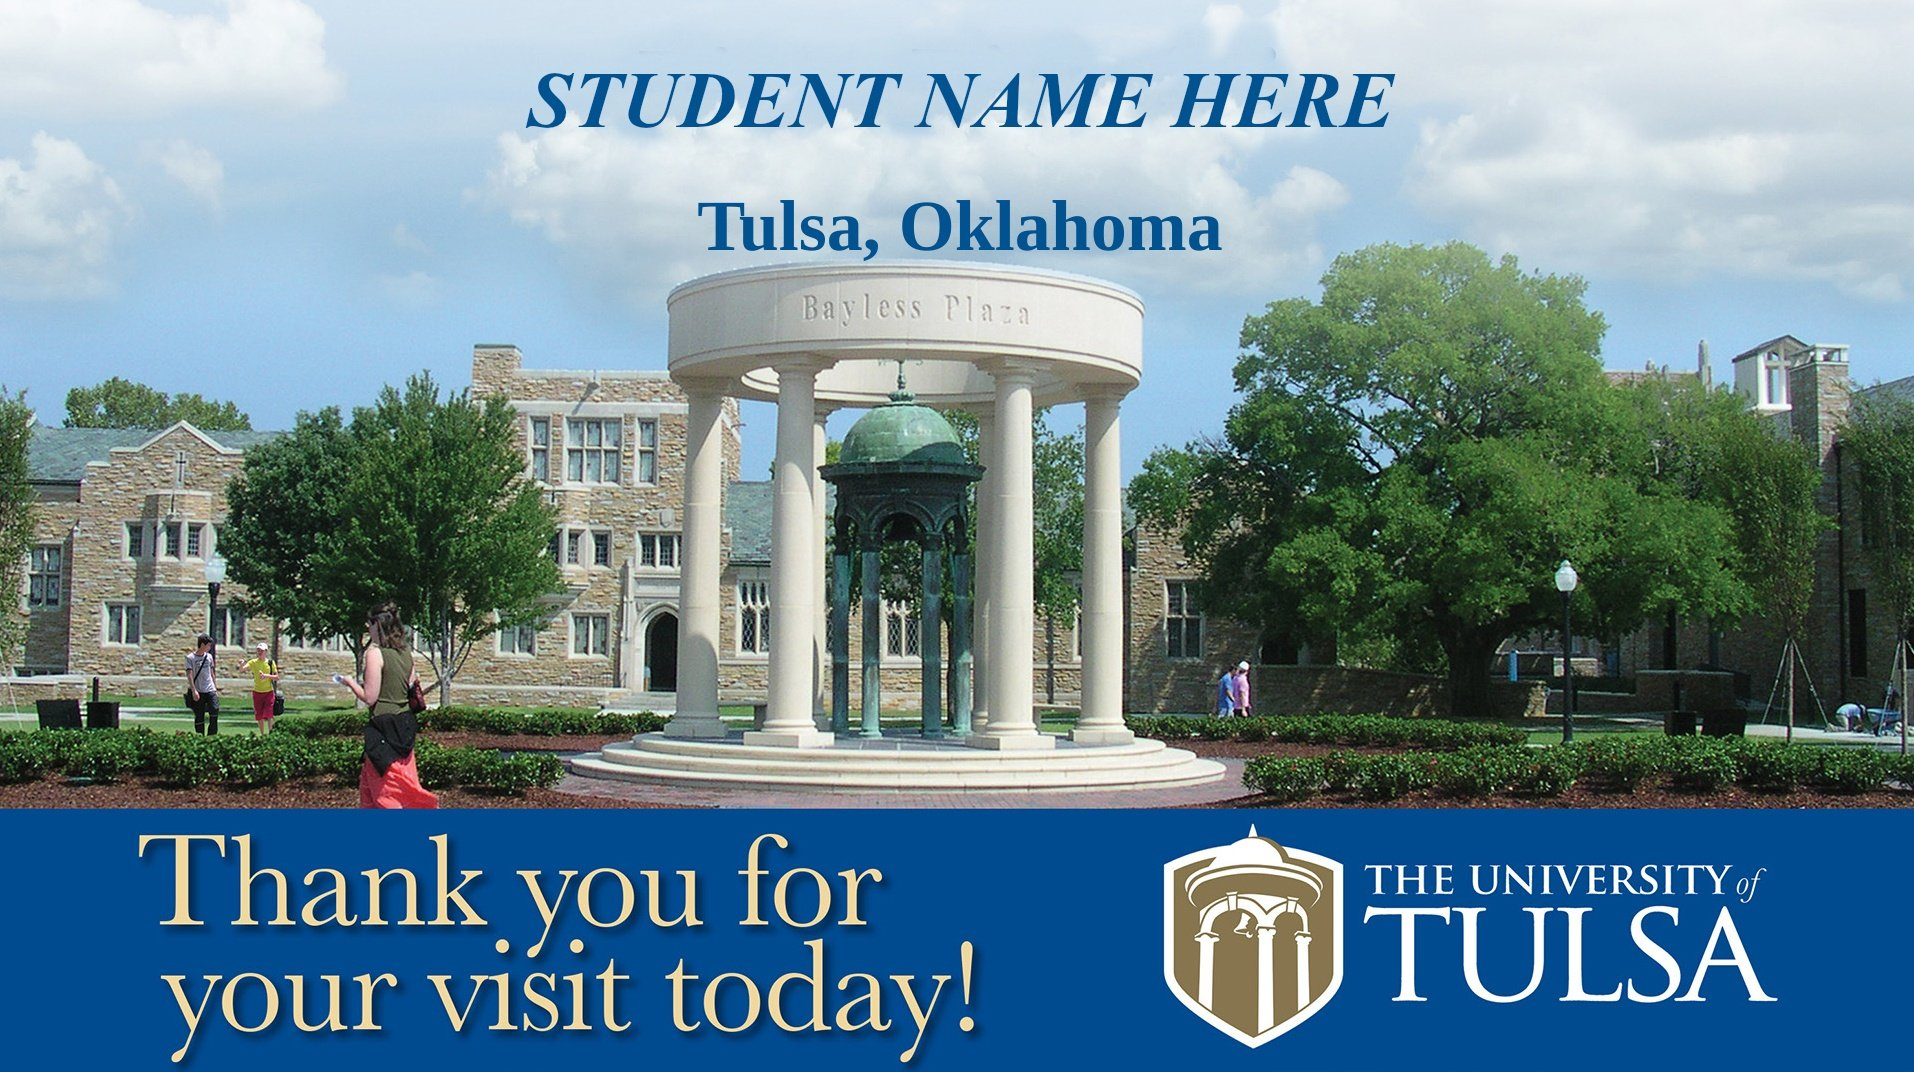 Welcome Message for Student Visit